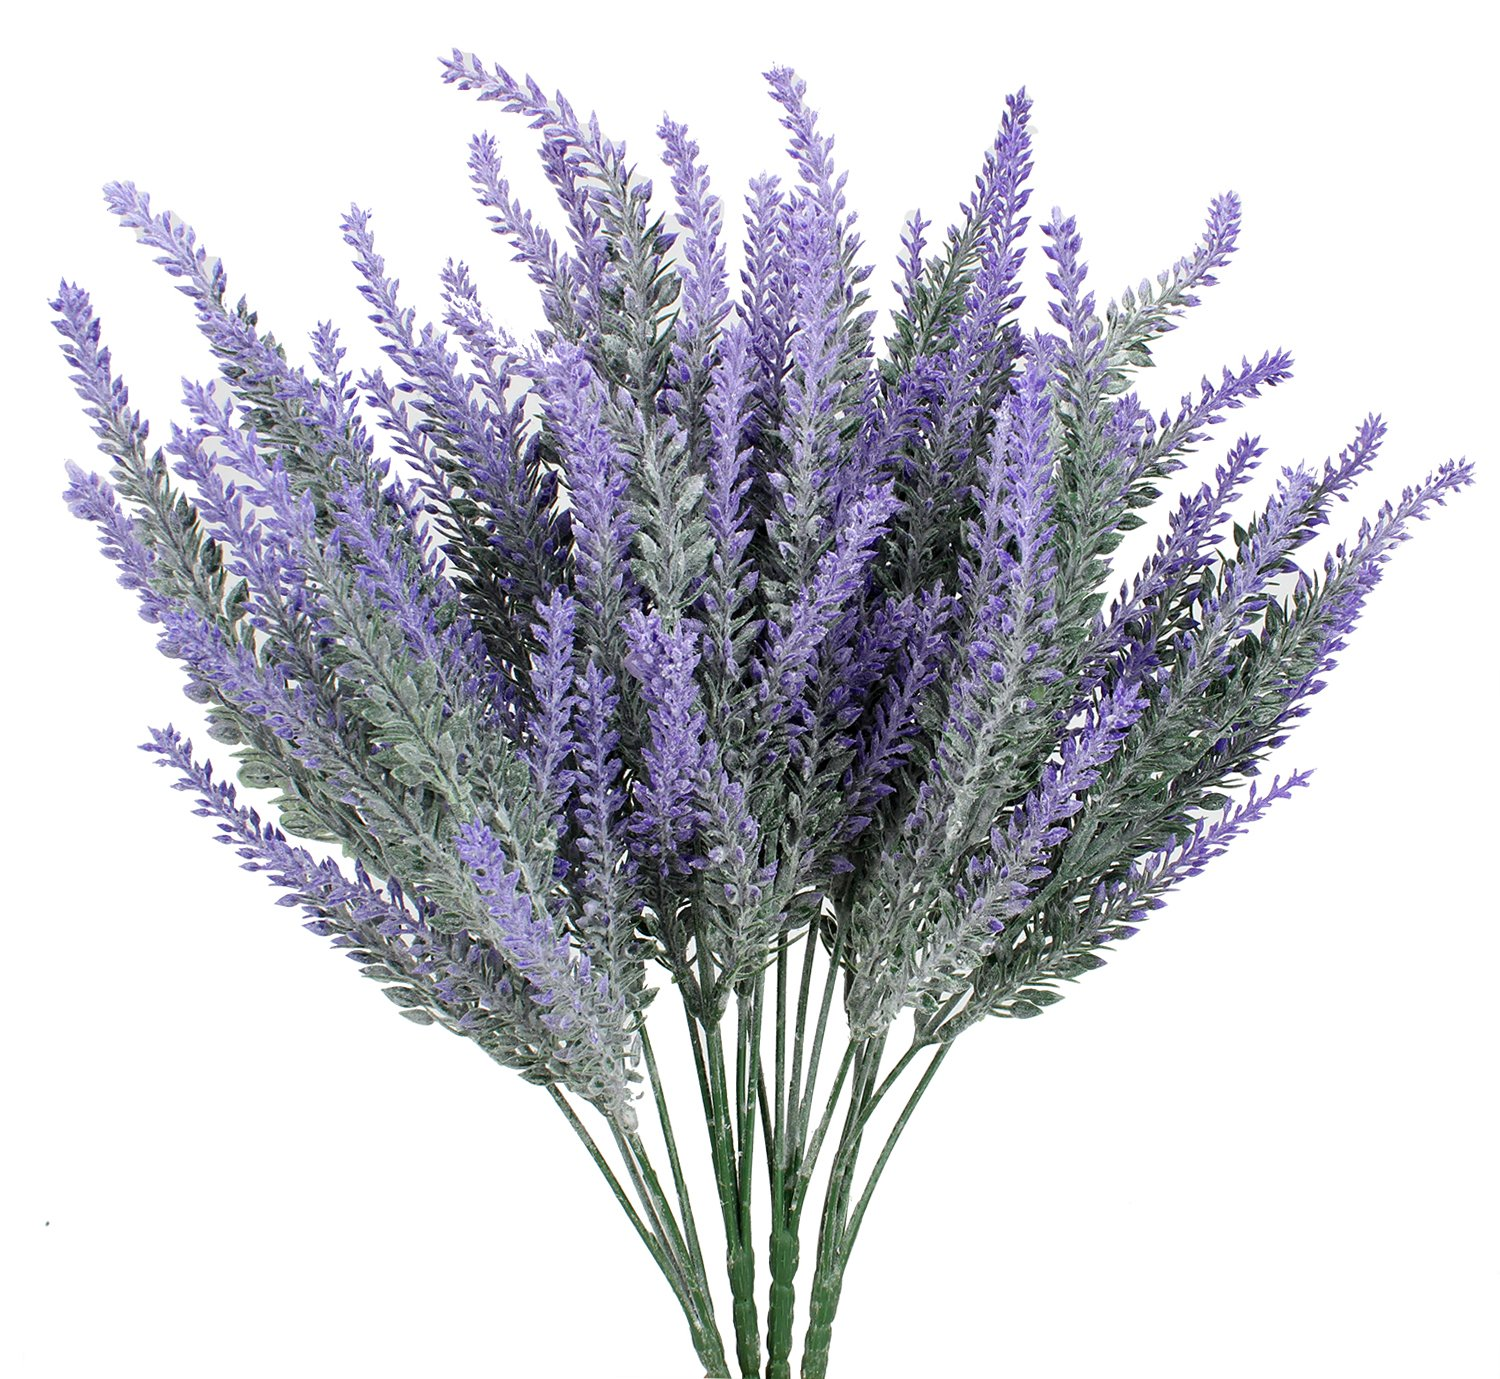 Duovlo 4pcs Lavender Artificial Flower Bouquet Home Bridal DIY Floor Garden Office Wedding Decor